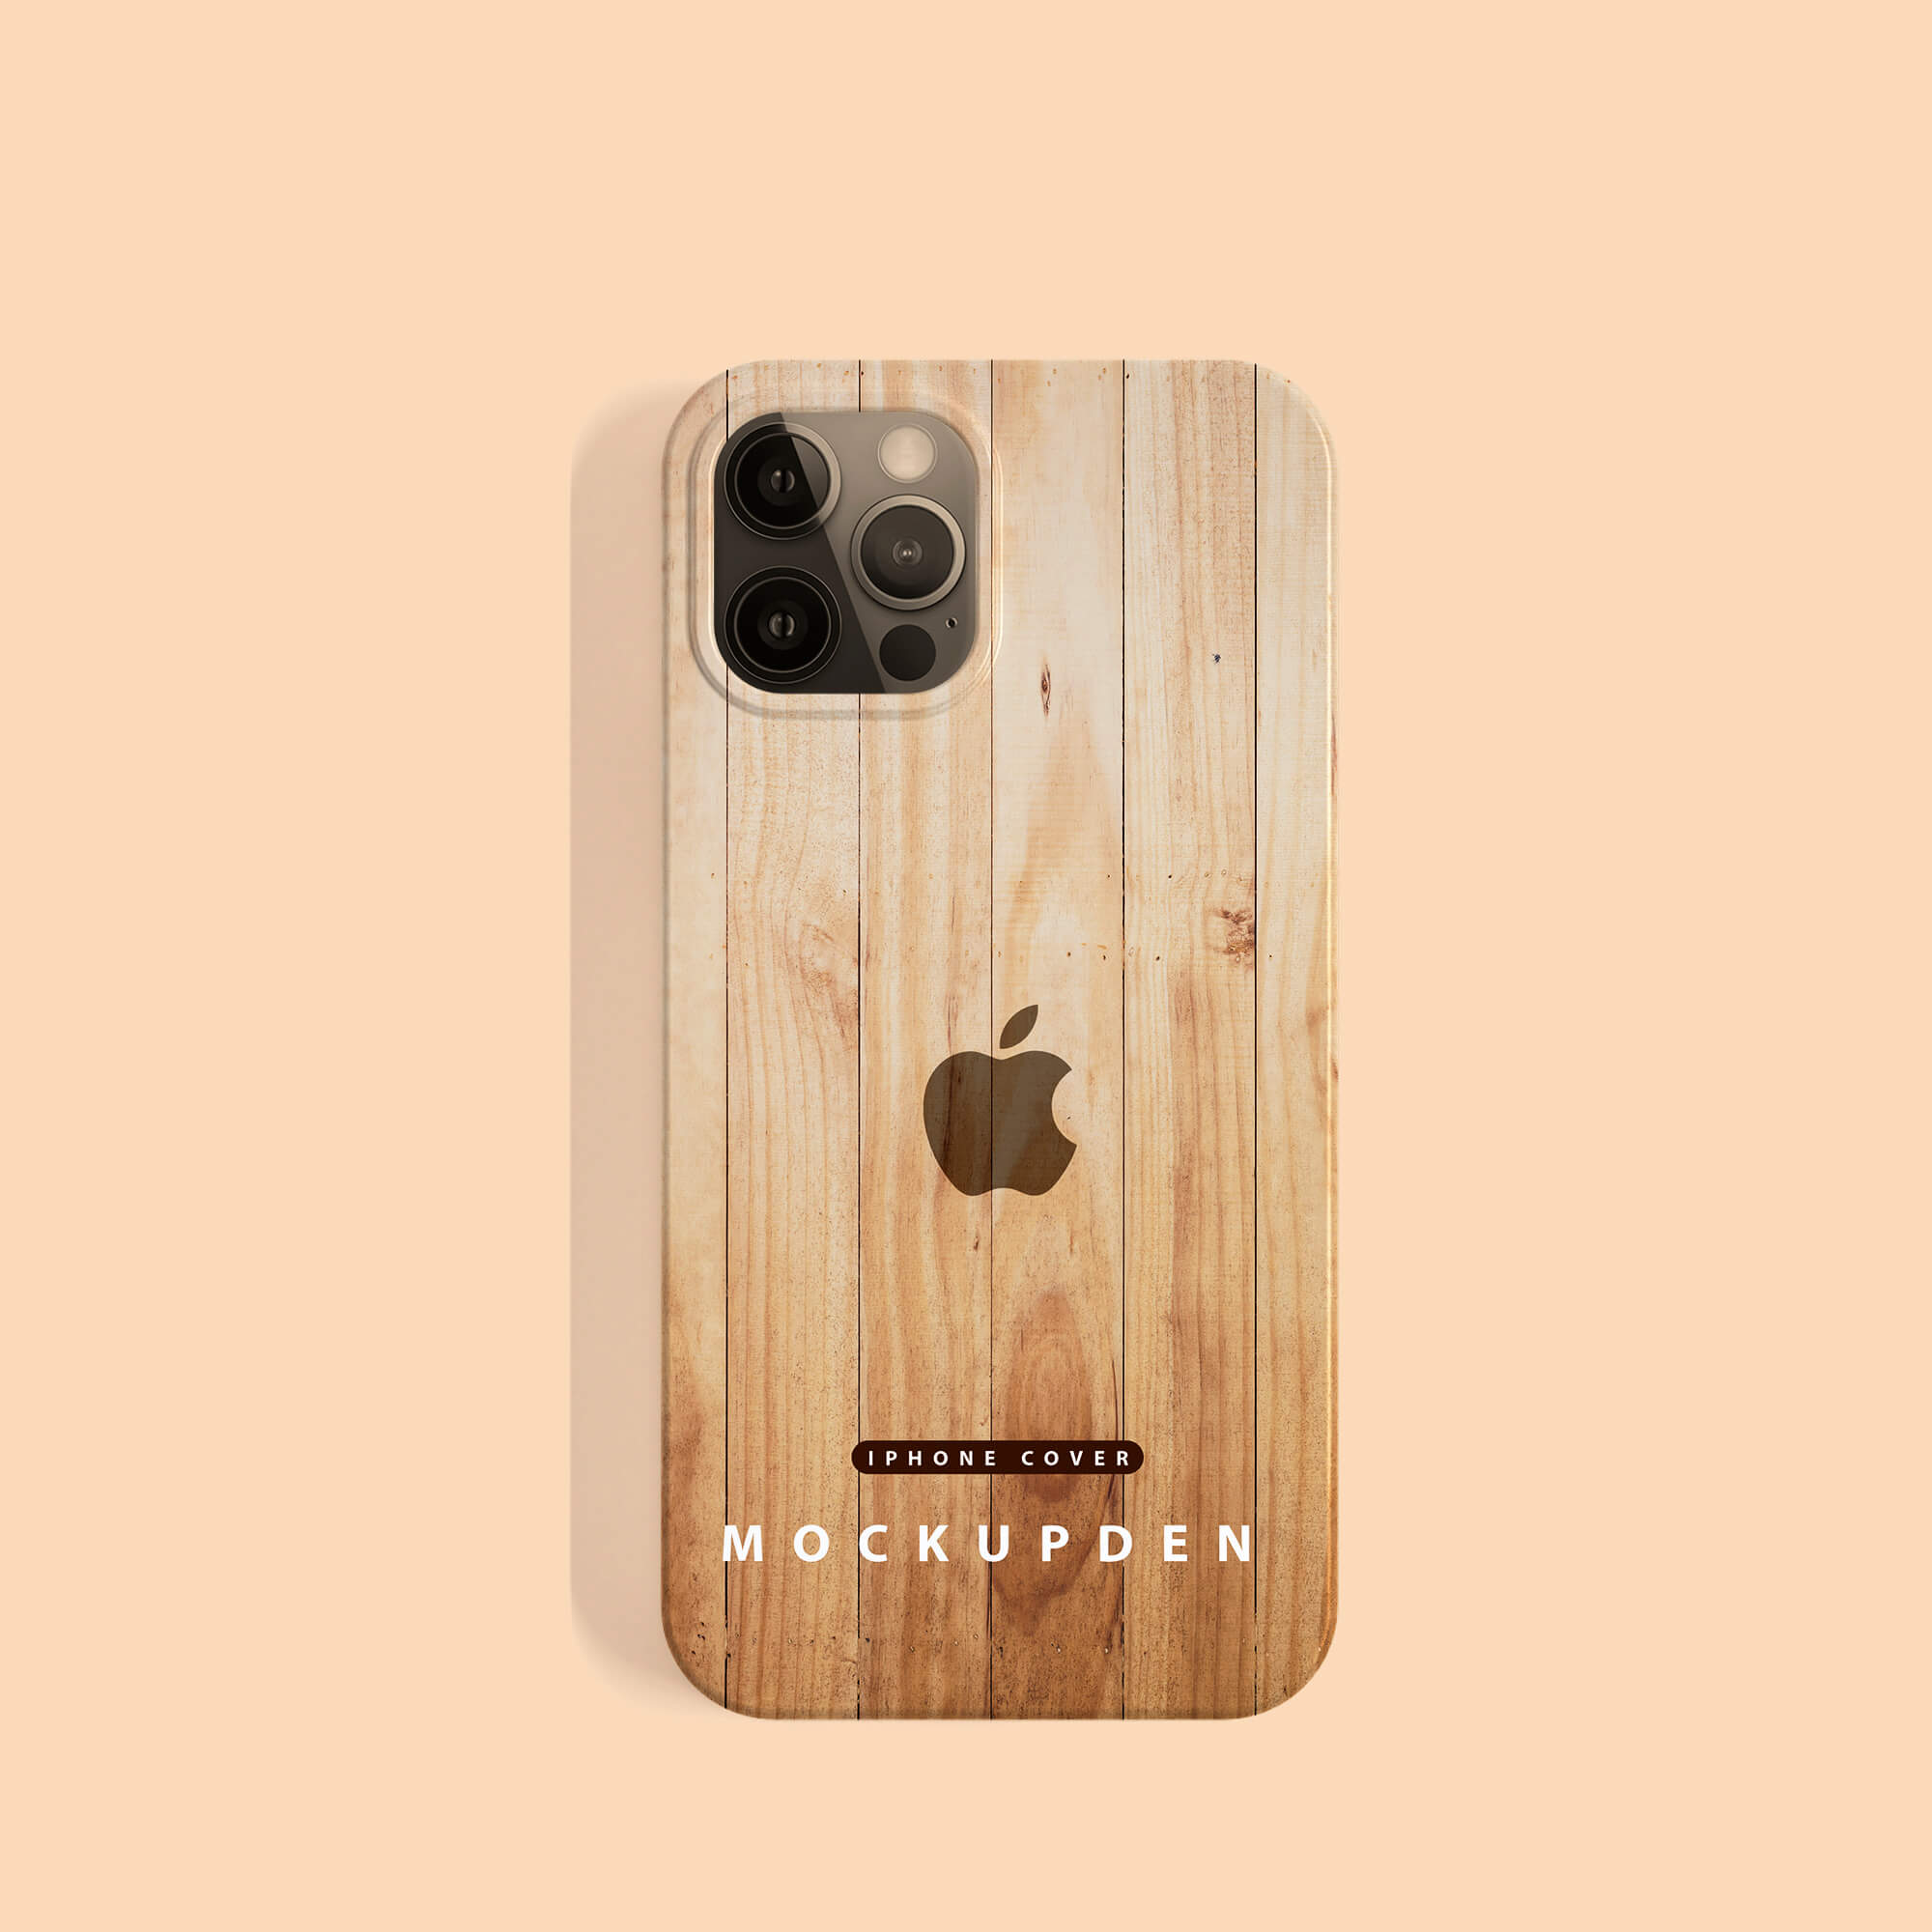 Design Free iPhone Cover Mockup PSD Template